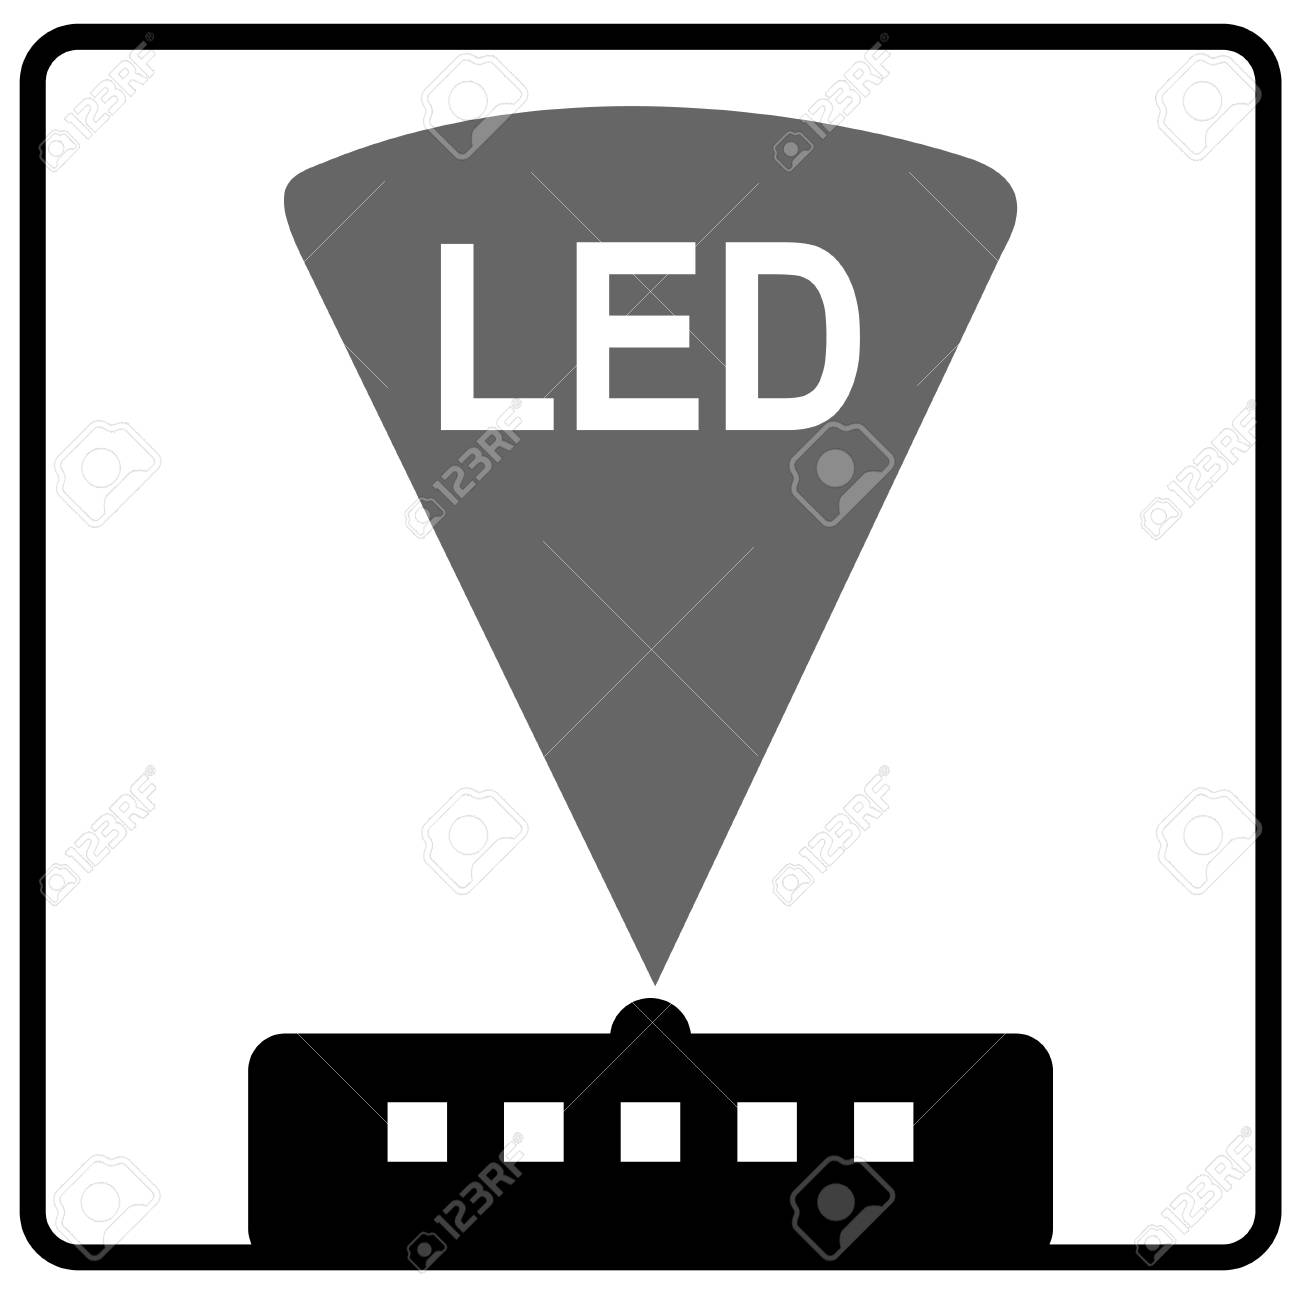 Symbol Of Light-emitting Diode (LED) Vector Royalty Free Cliparts ...